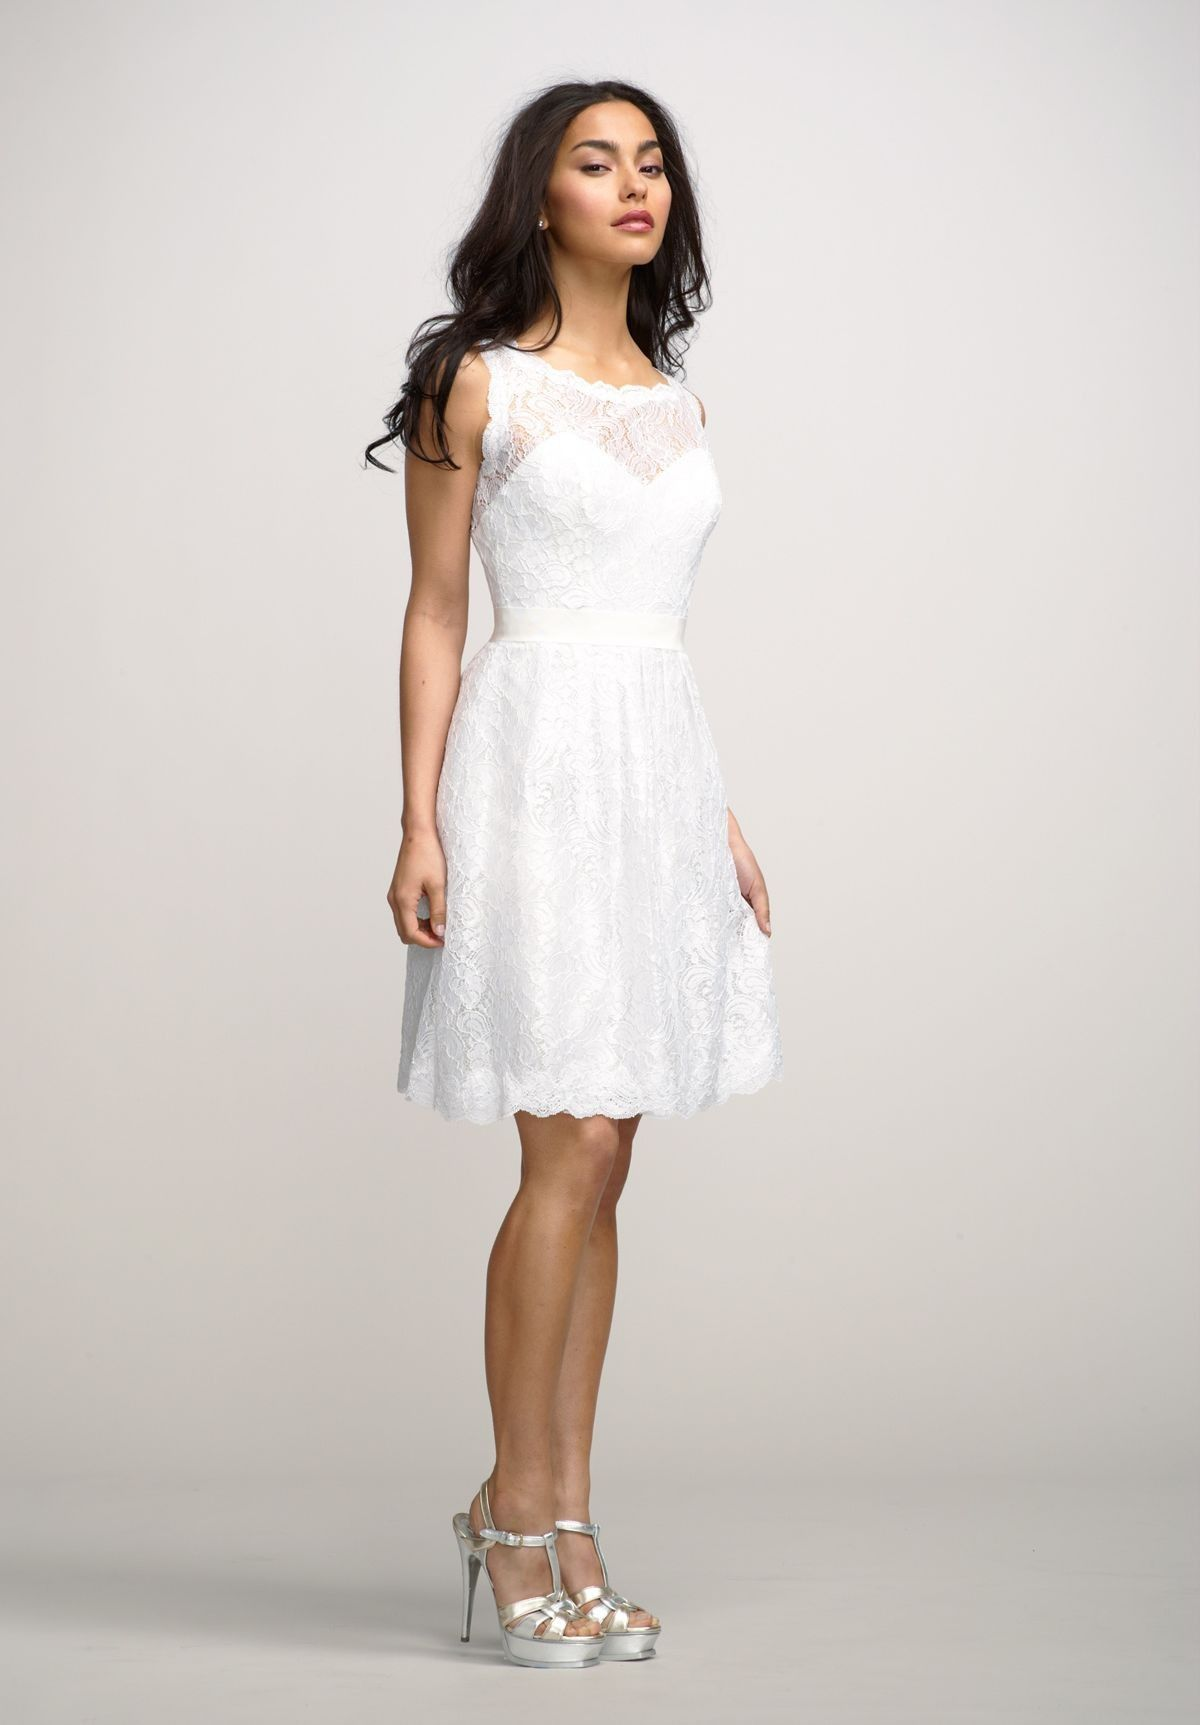 Wedding Party Dresses Without Sleeve | Party Dresses | Pinterest ...